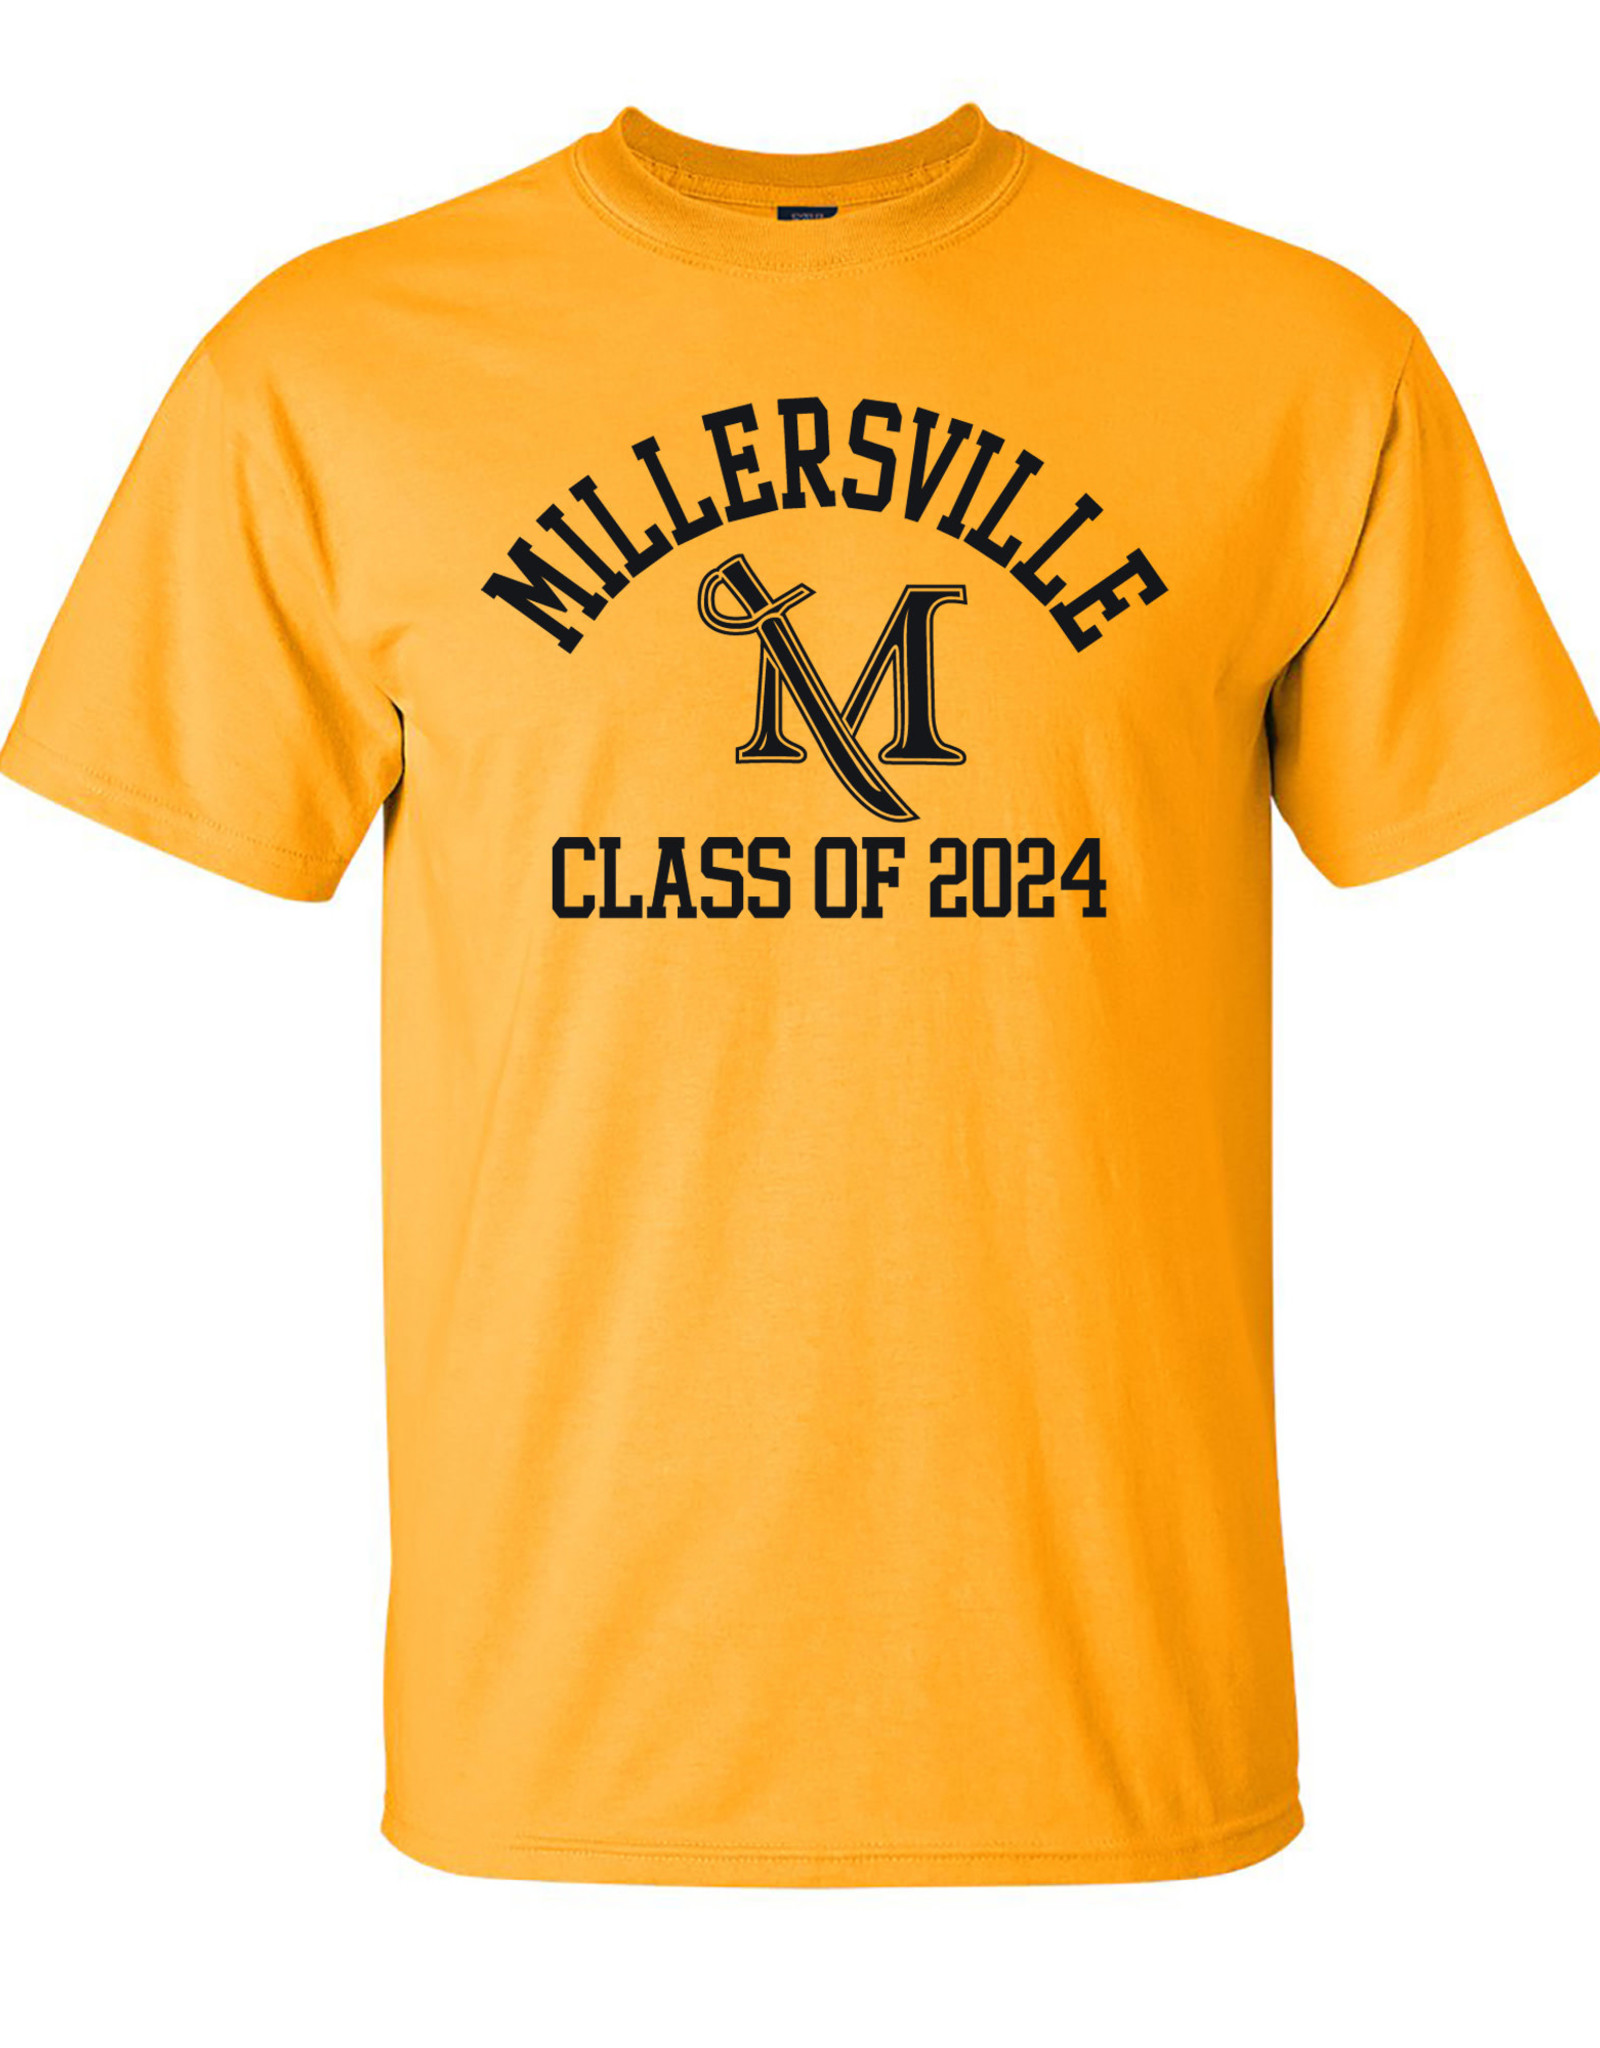 Class Of 2024 Tee Gold Sale!